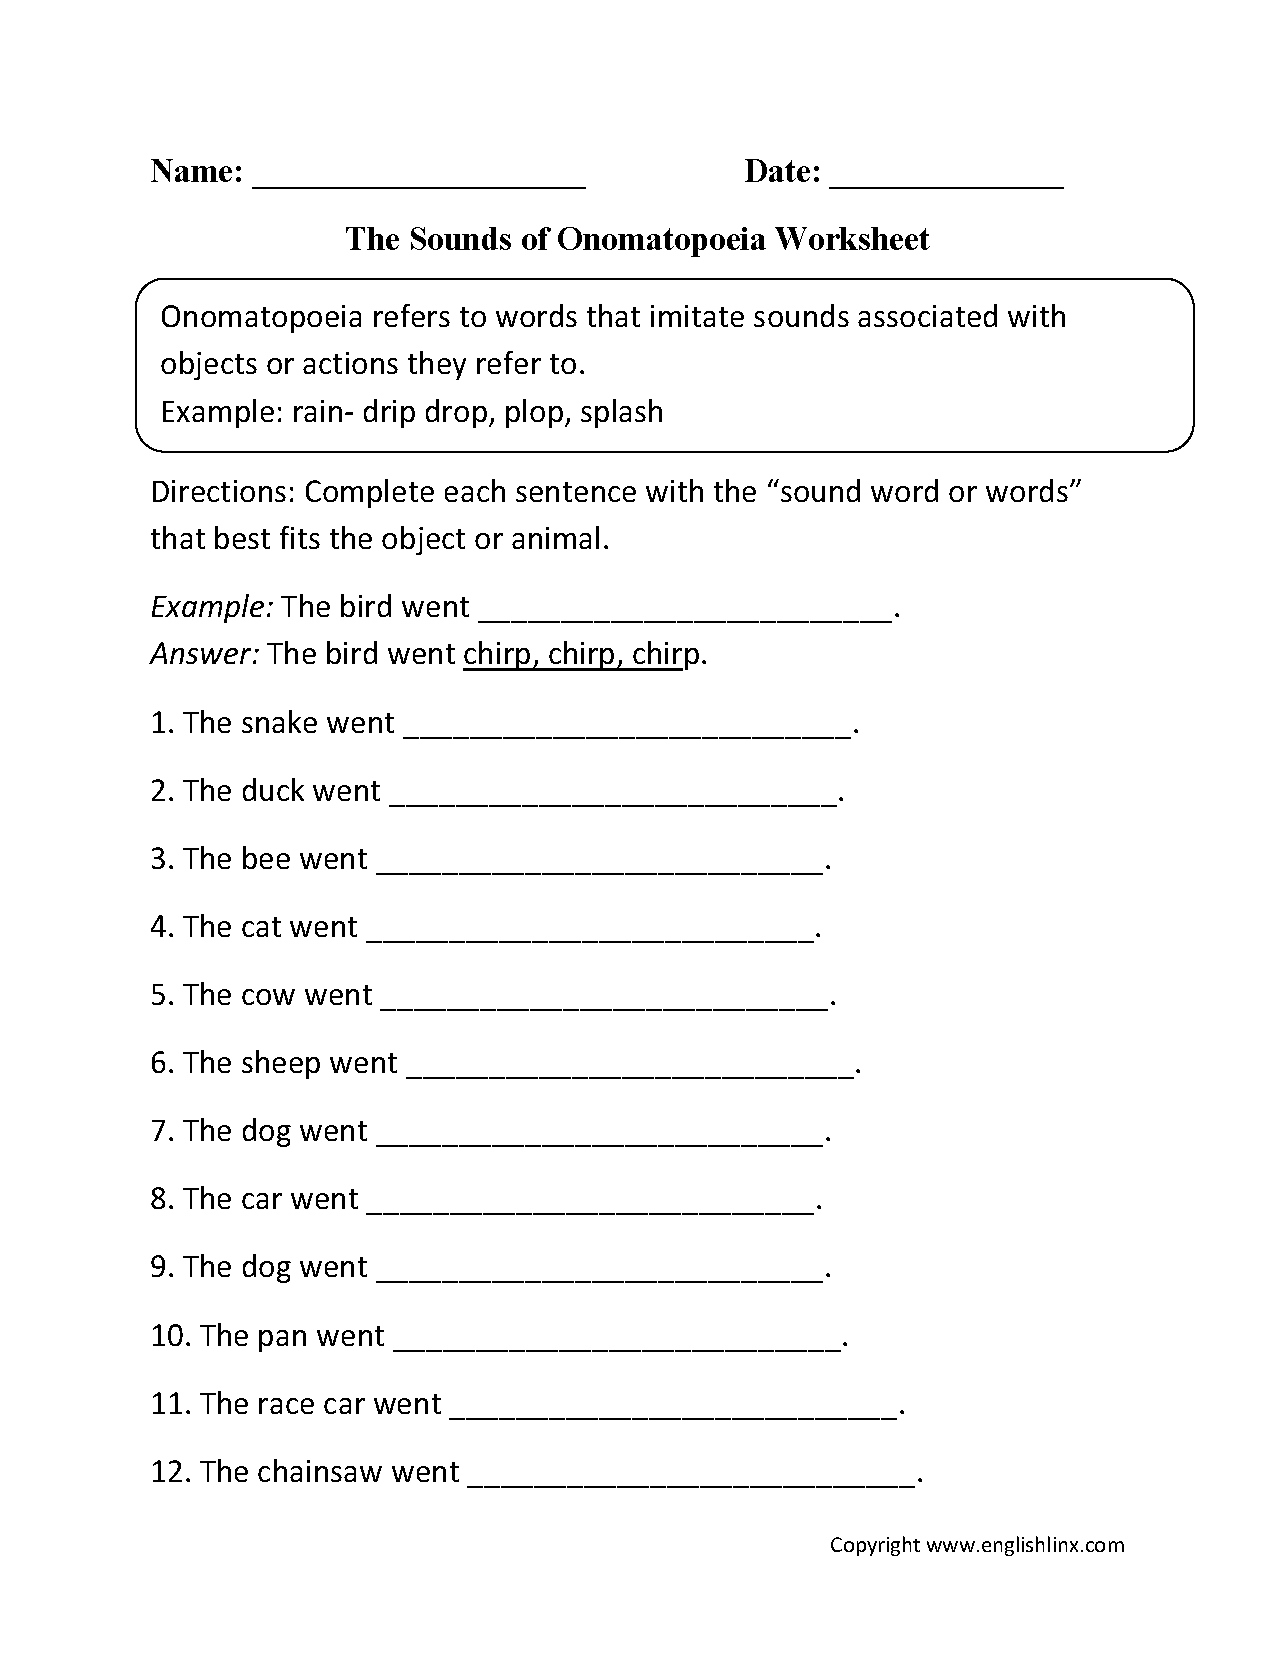 Worksheets Onomatopoeia Worksheet englishlinx com onomatopoeia worksheets sounds of worksheet